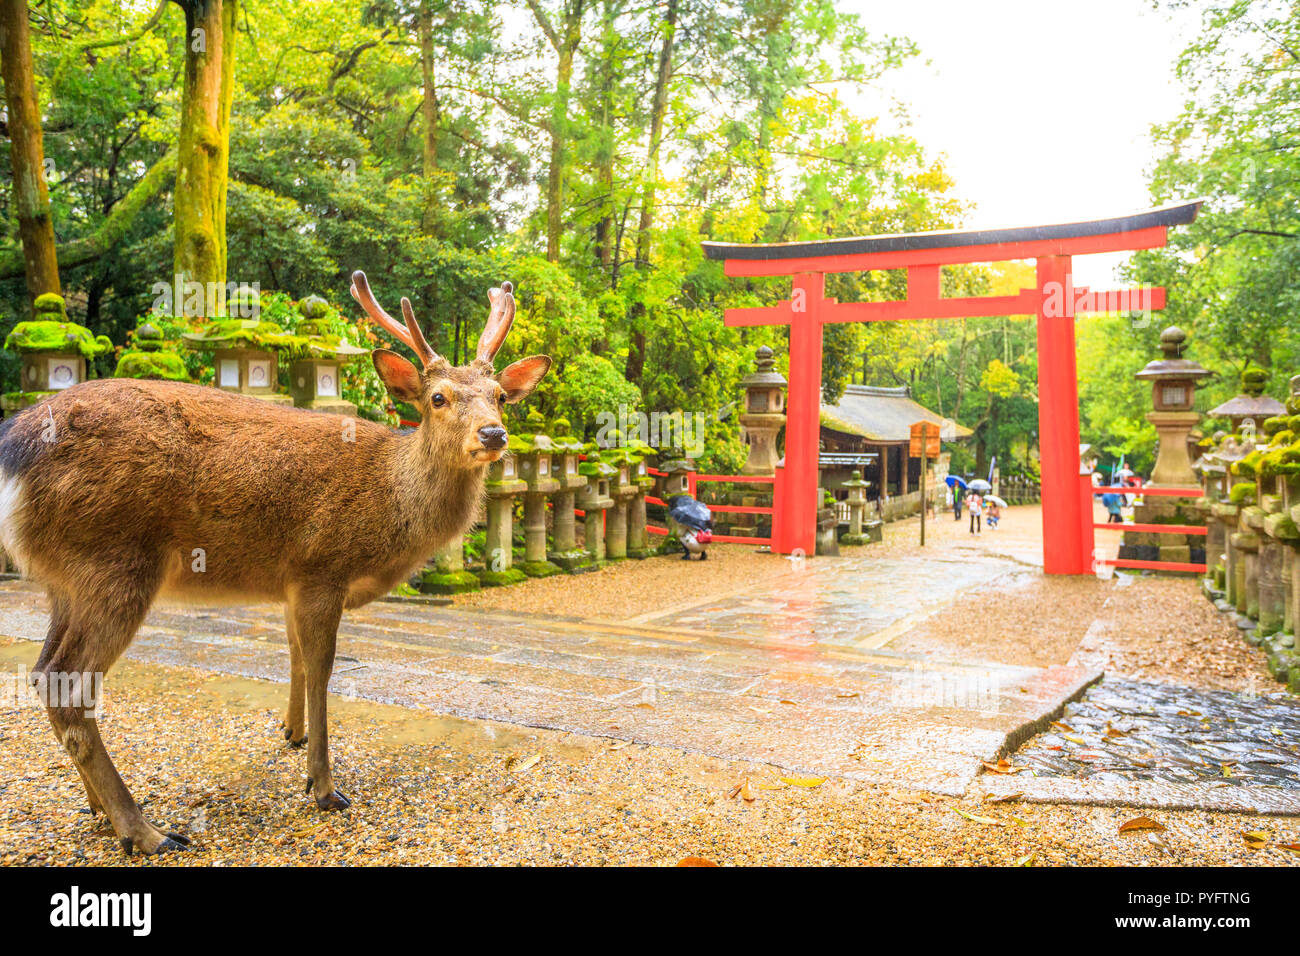 Wild deer and Torii gate of Nara Park in Japan. Deer are Nara's greatest tourist attraction. red Torii gate of Kasuga Taisha Shine one of the most popular temples in Nara City. Stock Photo